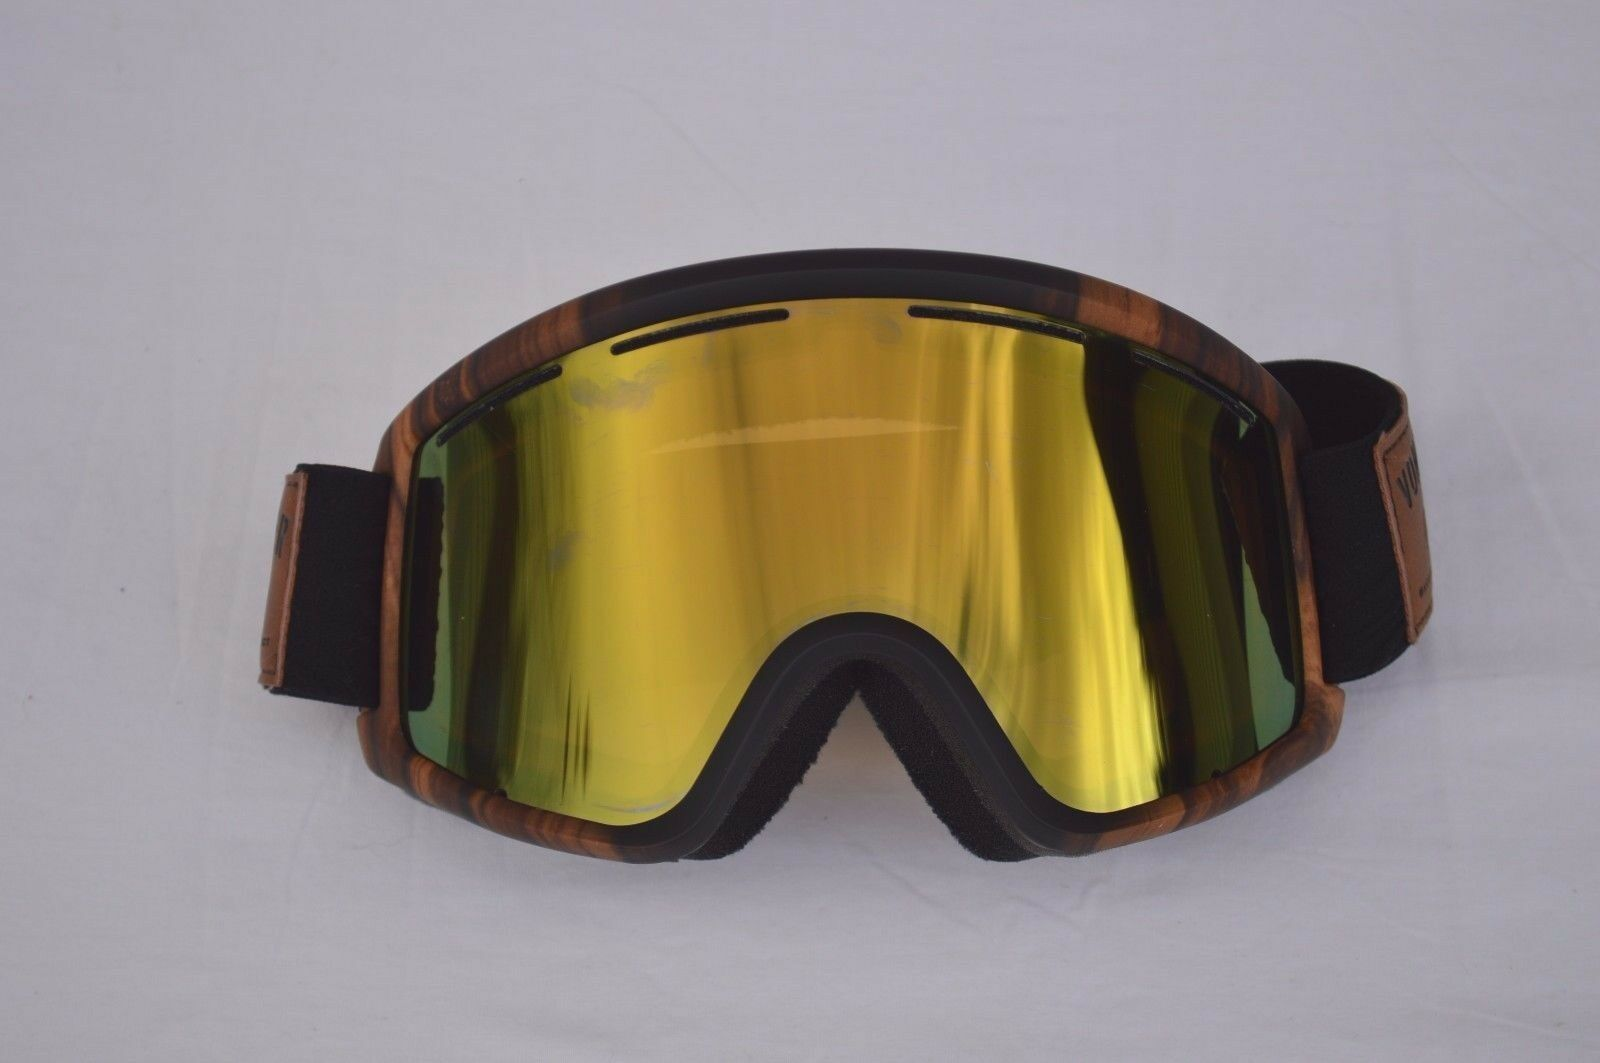 2016 NWOT VONZIPPER MASSIVE WOOD PROJECT  GOGGLES  130 green lenses brown frame  cost-effective